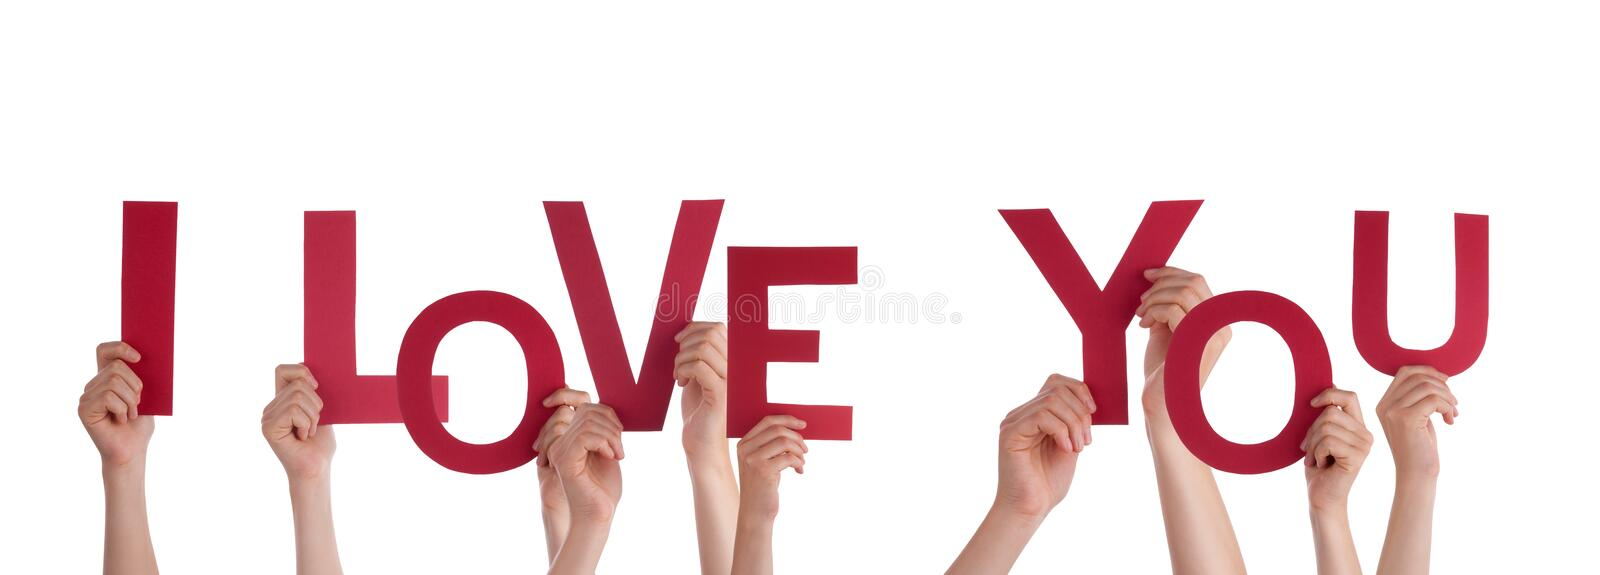 Hands Holding I love You royalty free stock images